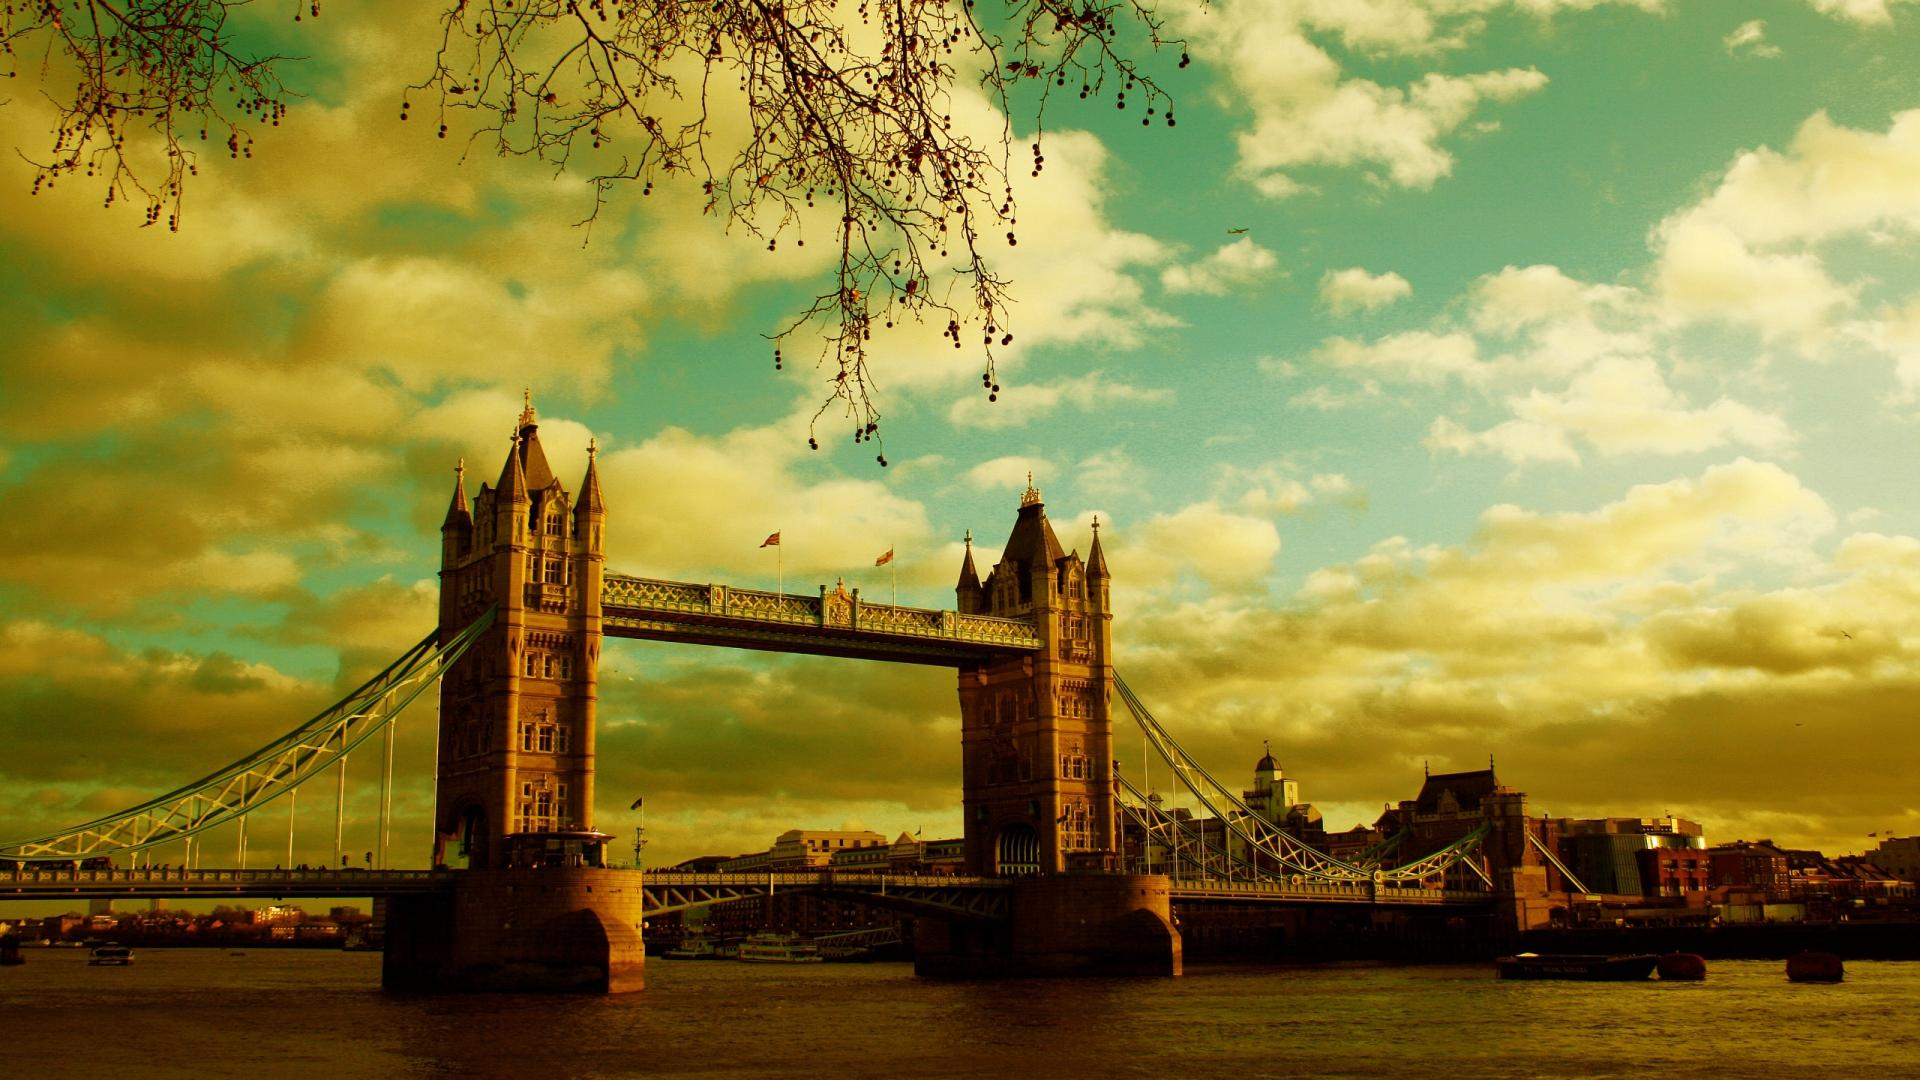 London Bridge Wallpapers | 4USkY.com